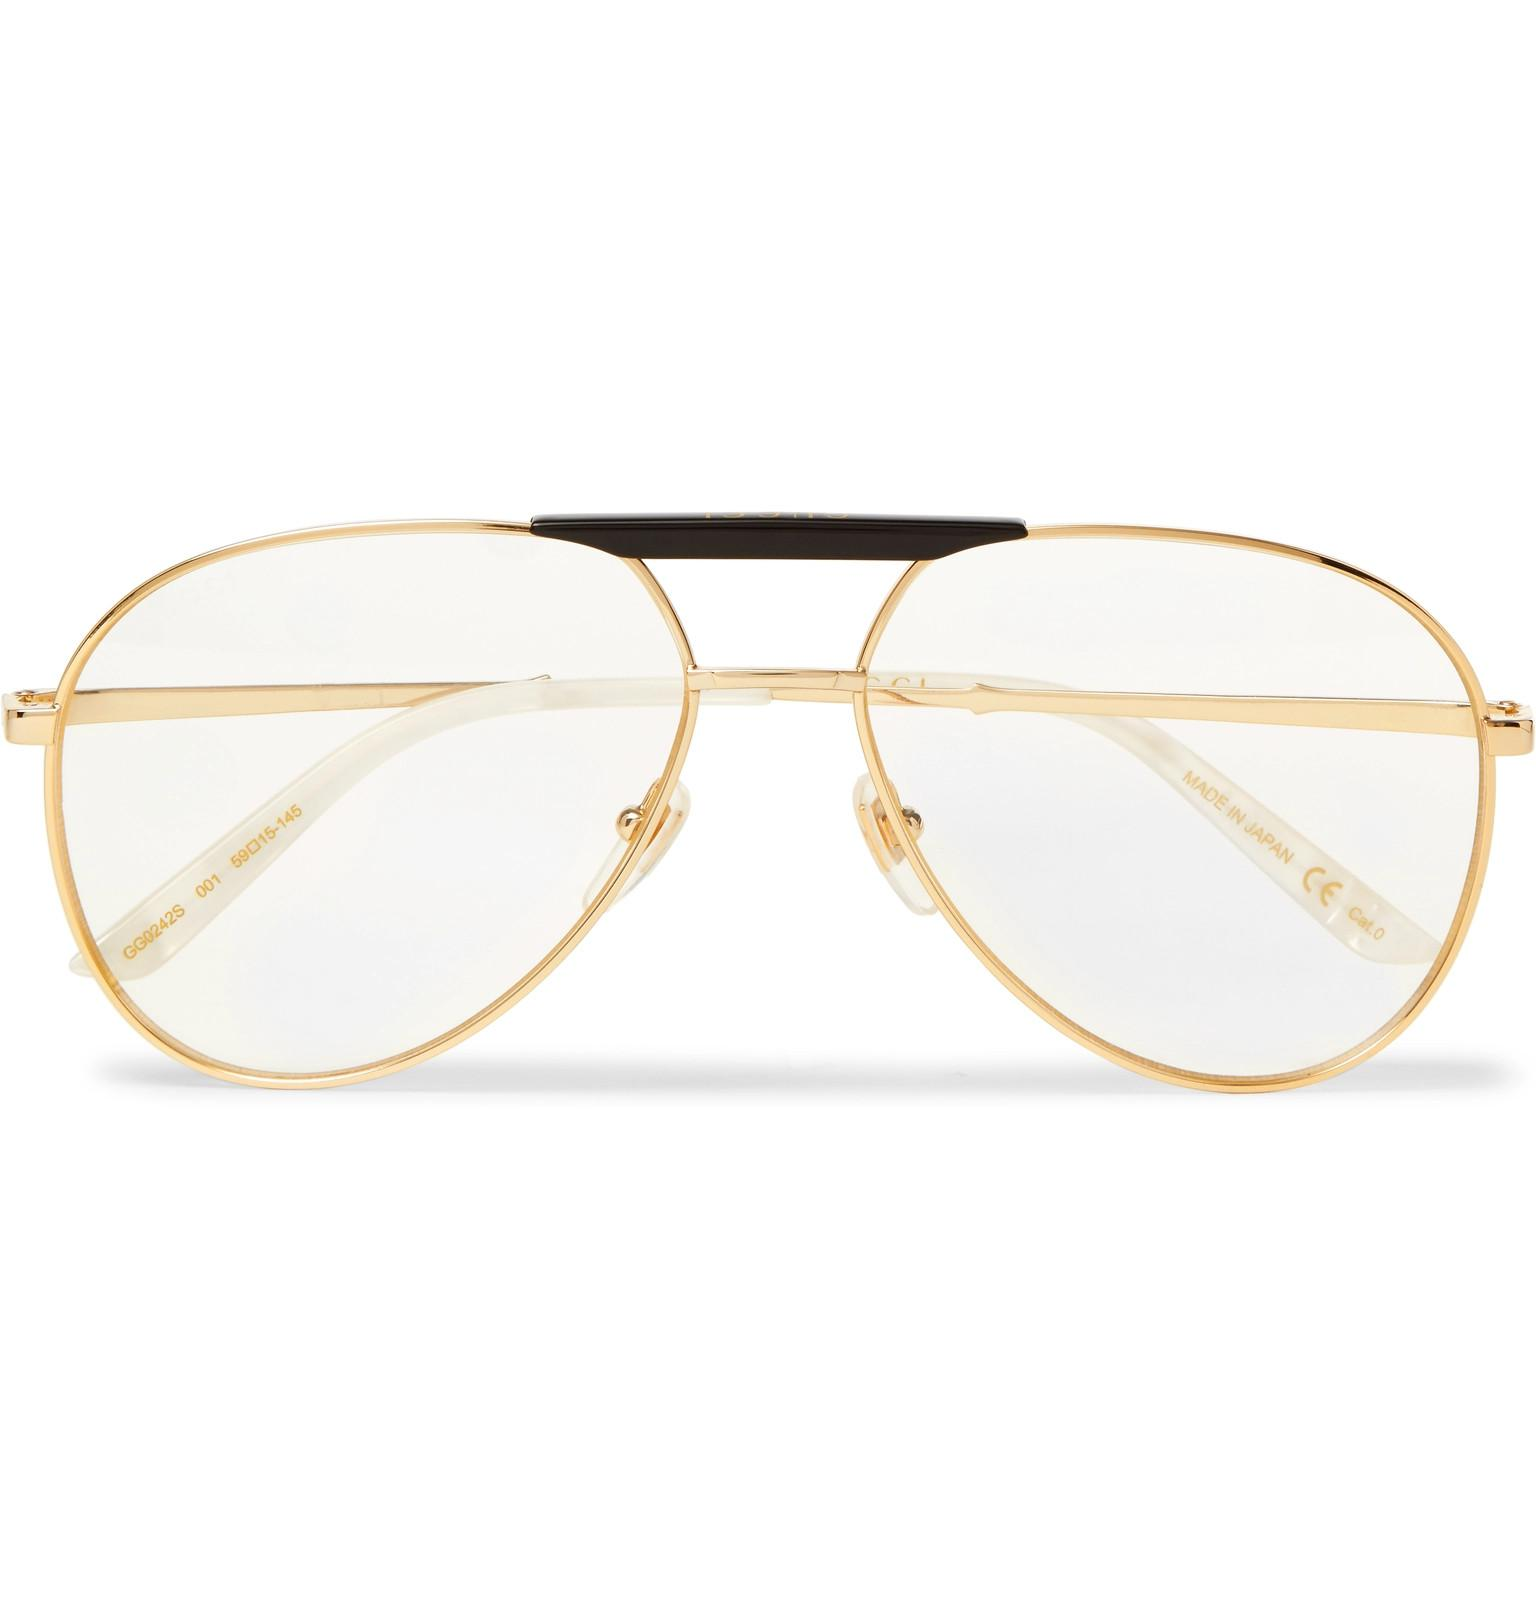 27de78acab3 Gucci Endura Aviator-style Acetate And Gold-tone Optical Glasses in ...